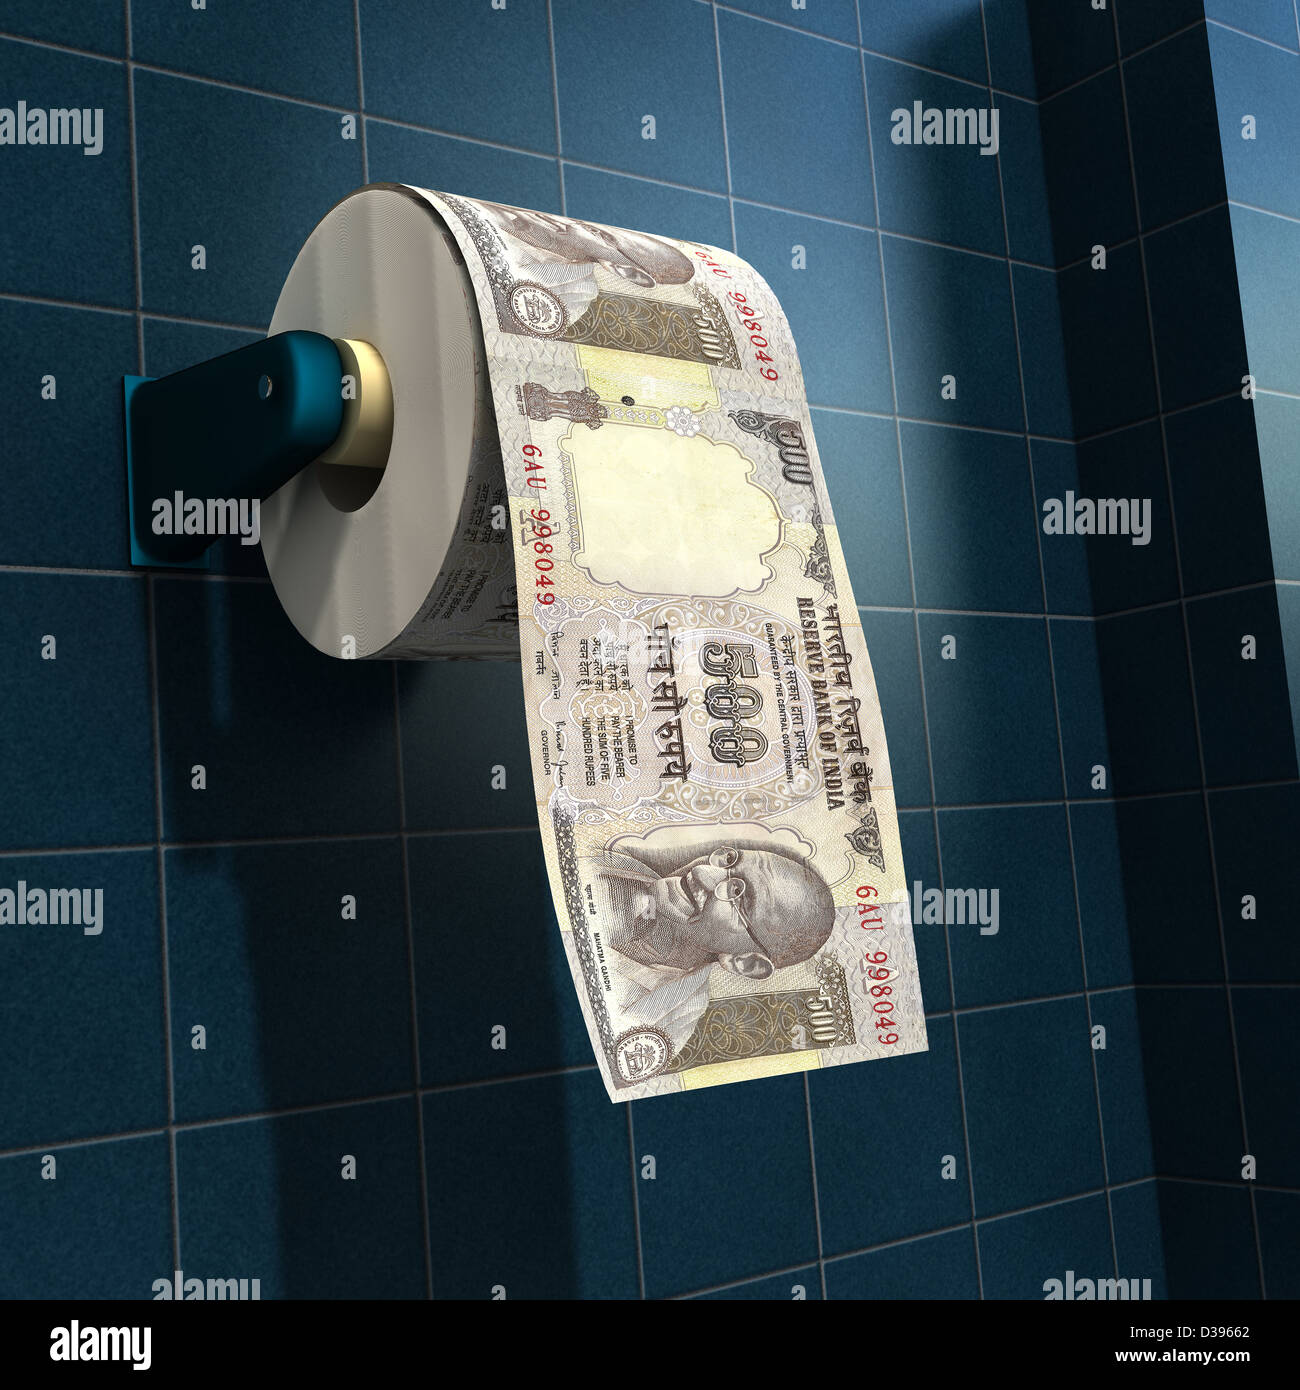 Money depicted as a roll of toilet paper on a bathroom dispenser - Stock Image